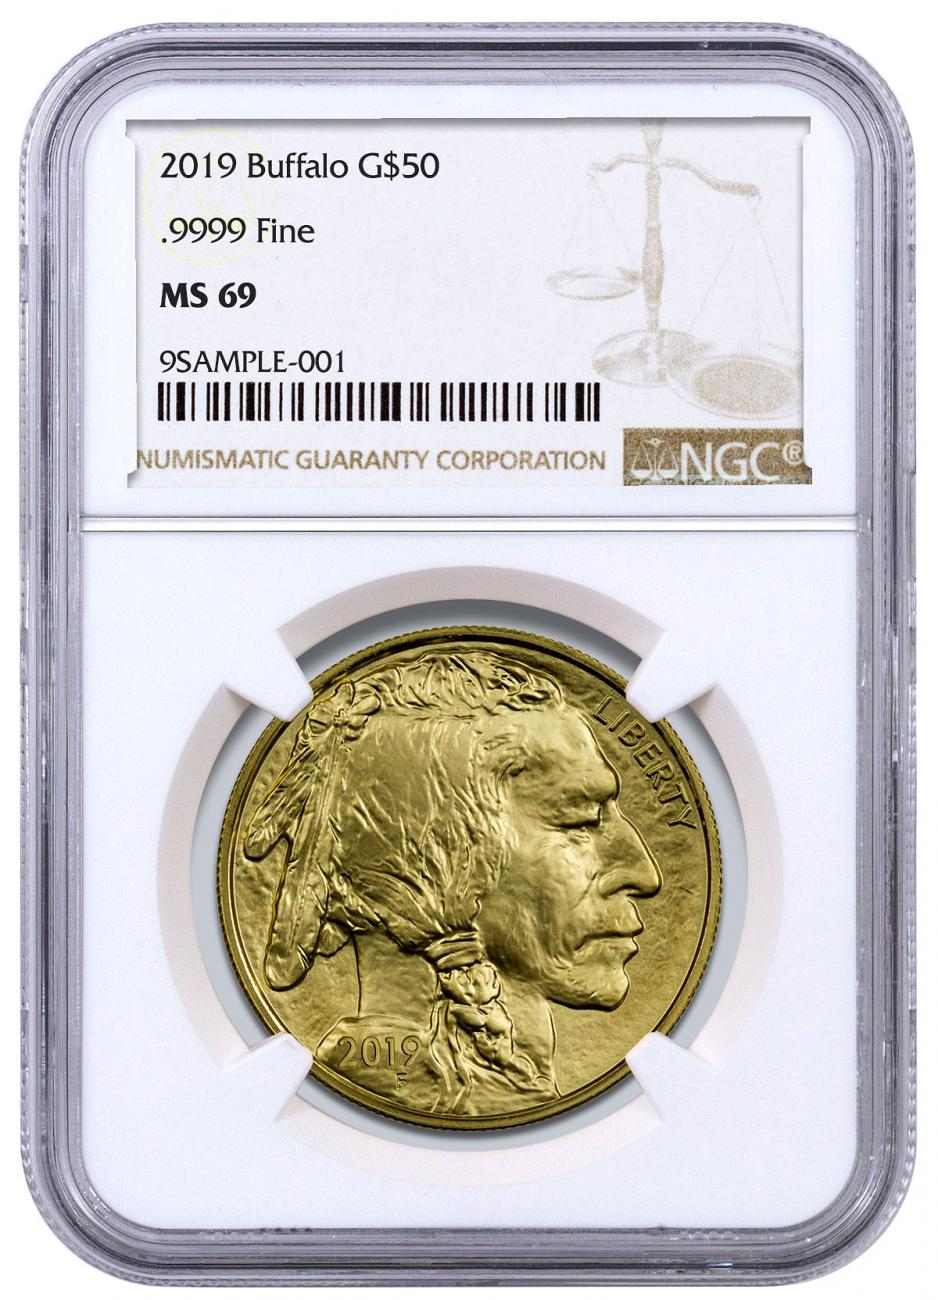 2019 1 oz Gold Buffalo $50 Coin NGC MS69